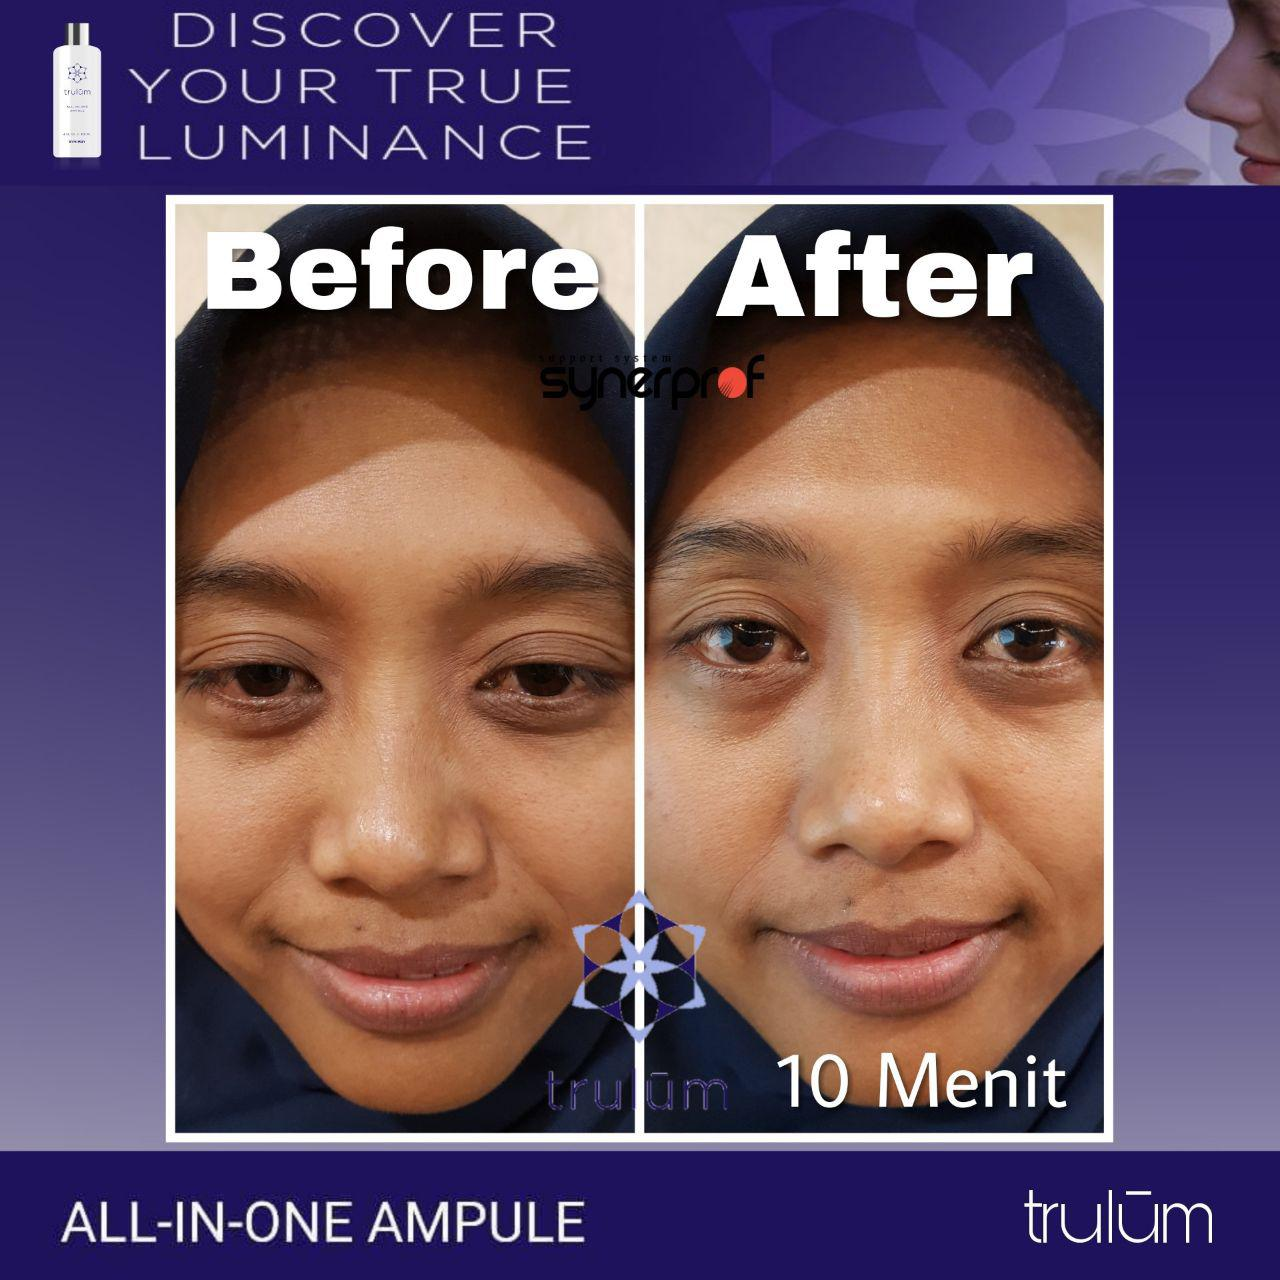 Jual Trulum All In One Ampoule Di Rumbia, Jeneponto WA: 08112338376